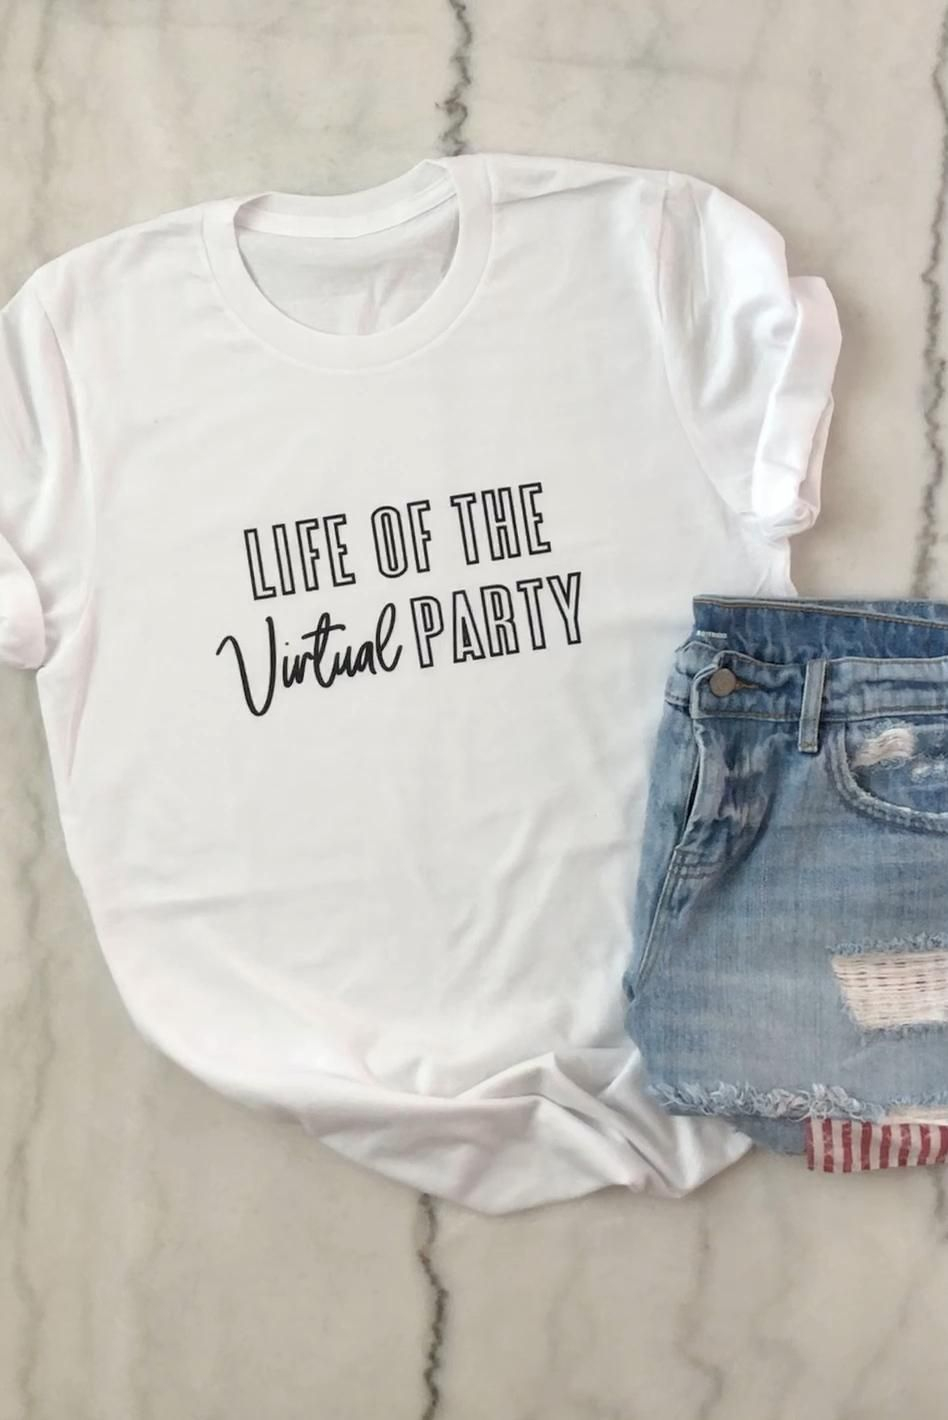 Life of the Virtual Party Tee - Pretty Collected